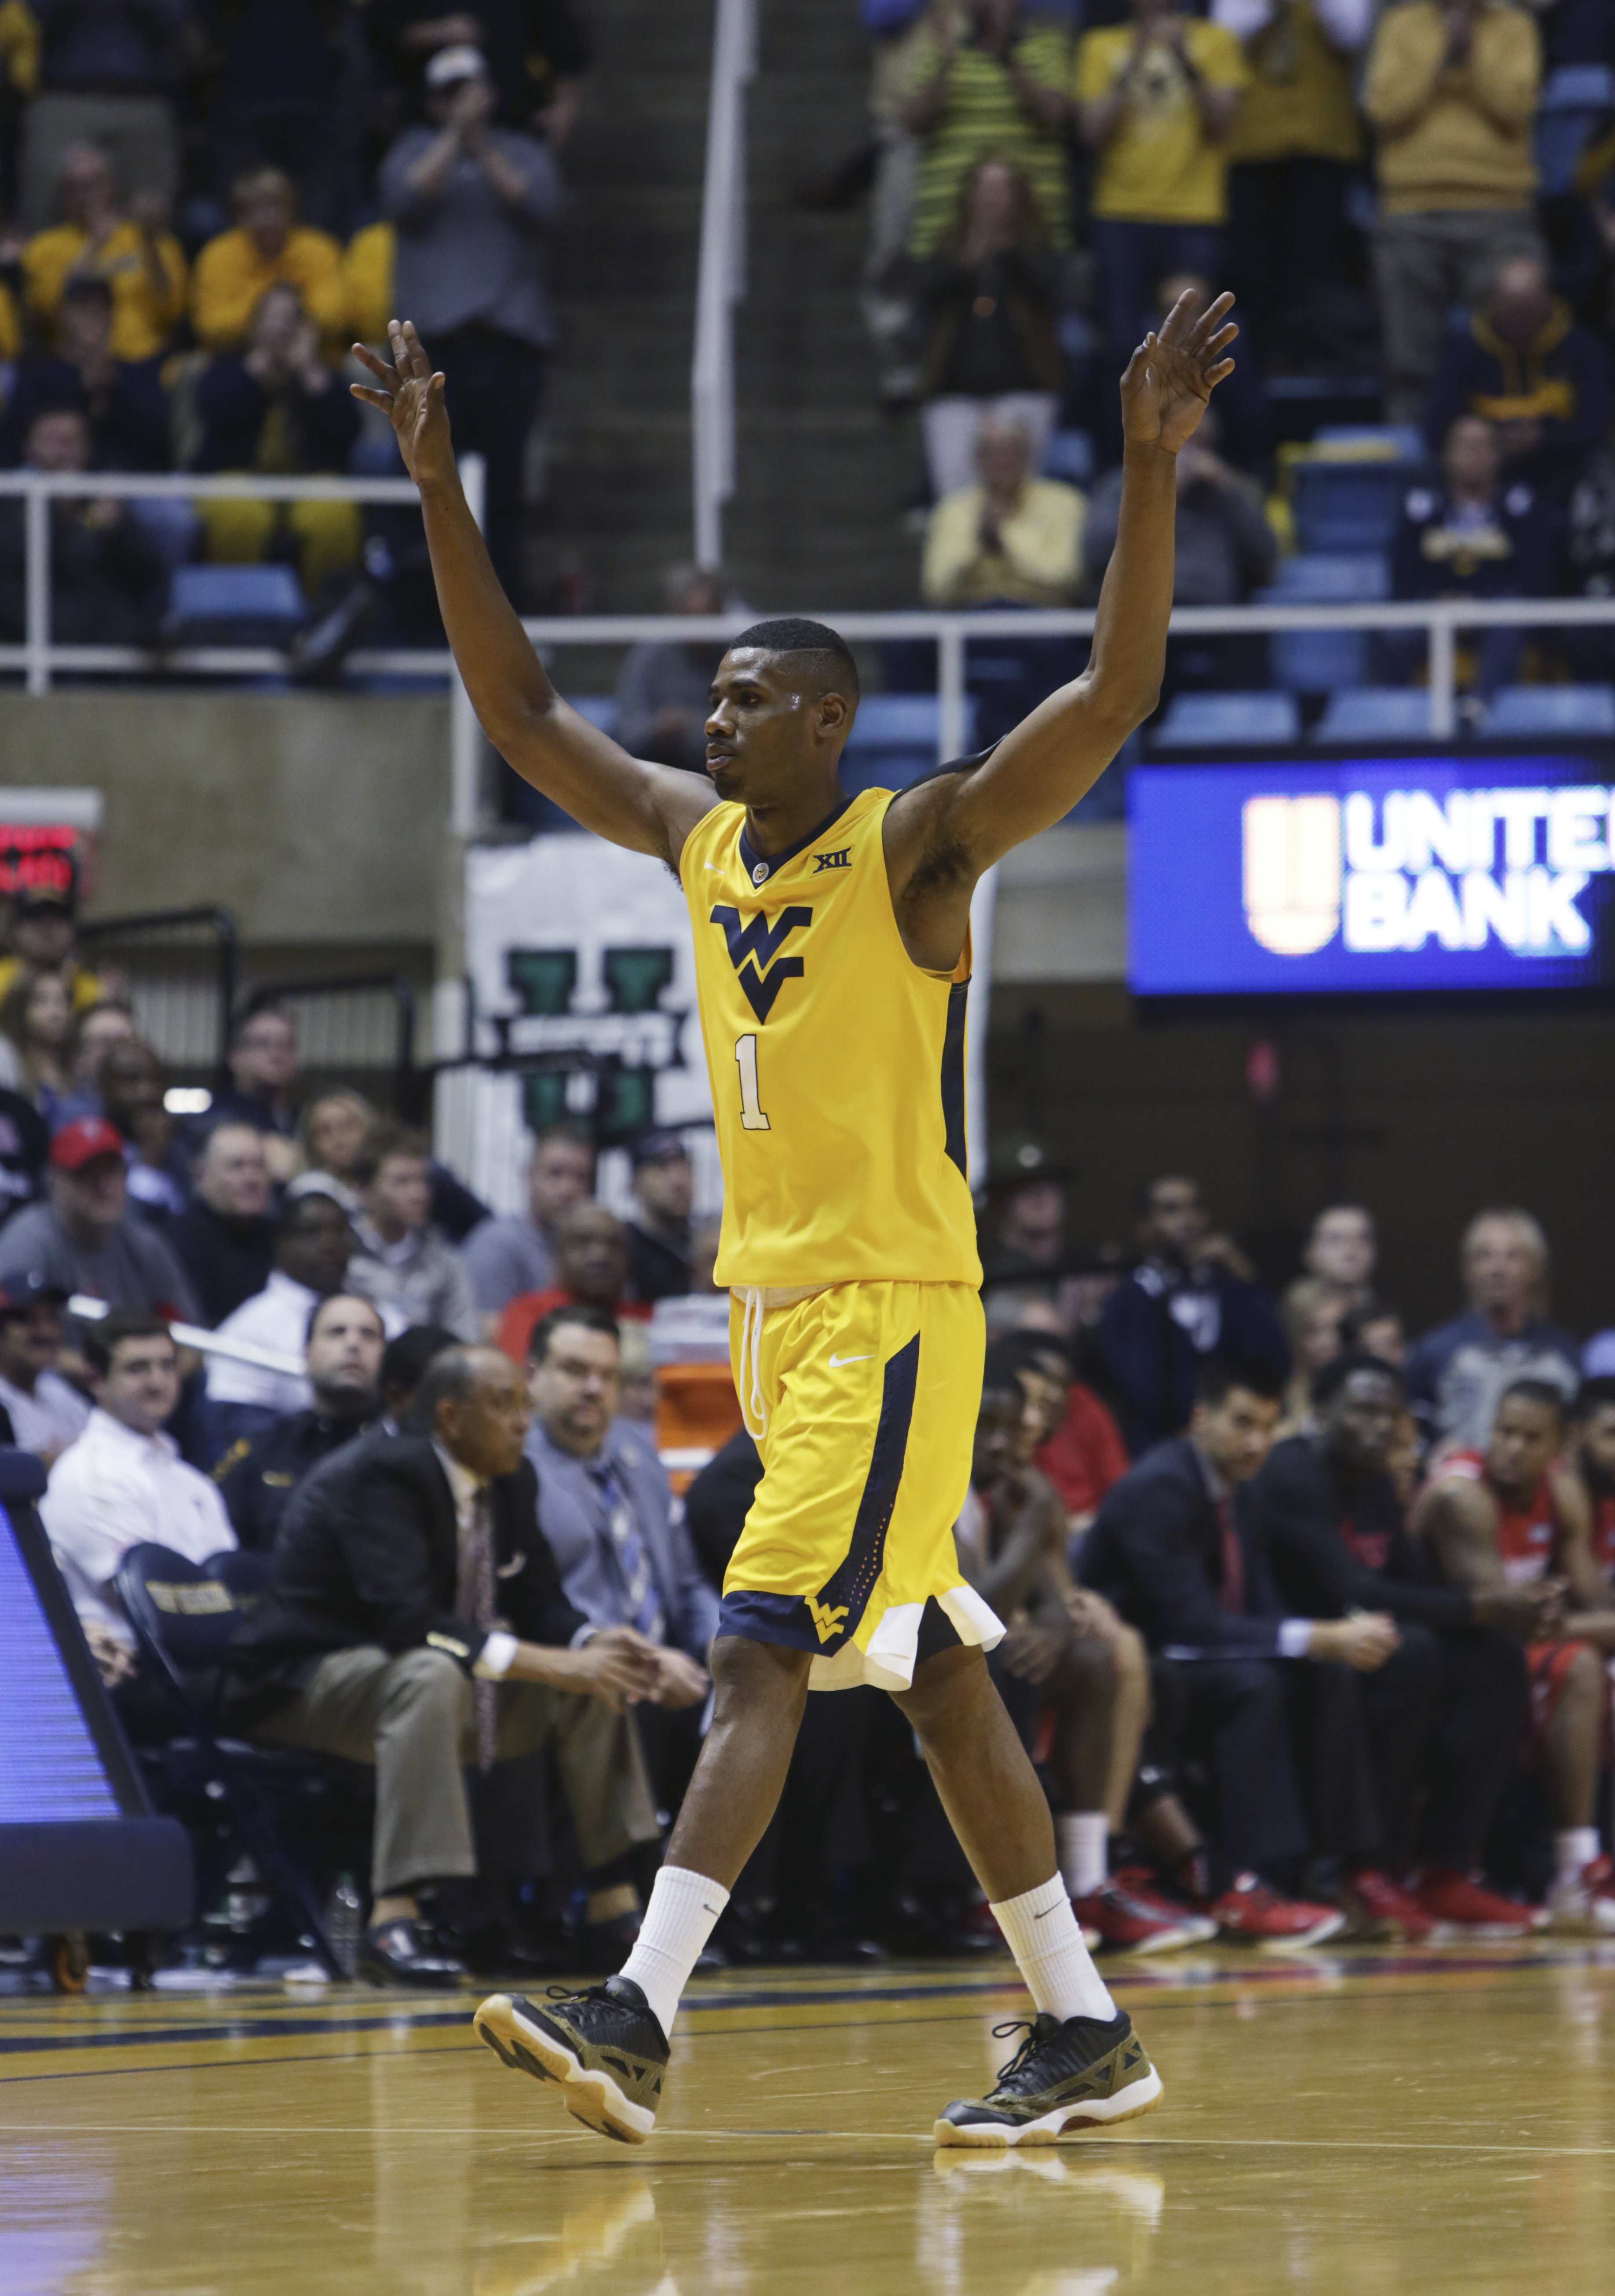 West Virginia forward Jonathan Holton waves goodbye to the fans as he walks to the bench during the second half of the team's NCAA college basketball game against Texas Tech, Wednesday, March, 2, 2016, in Morgantown, W.Va. West Virginia, in its final home